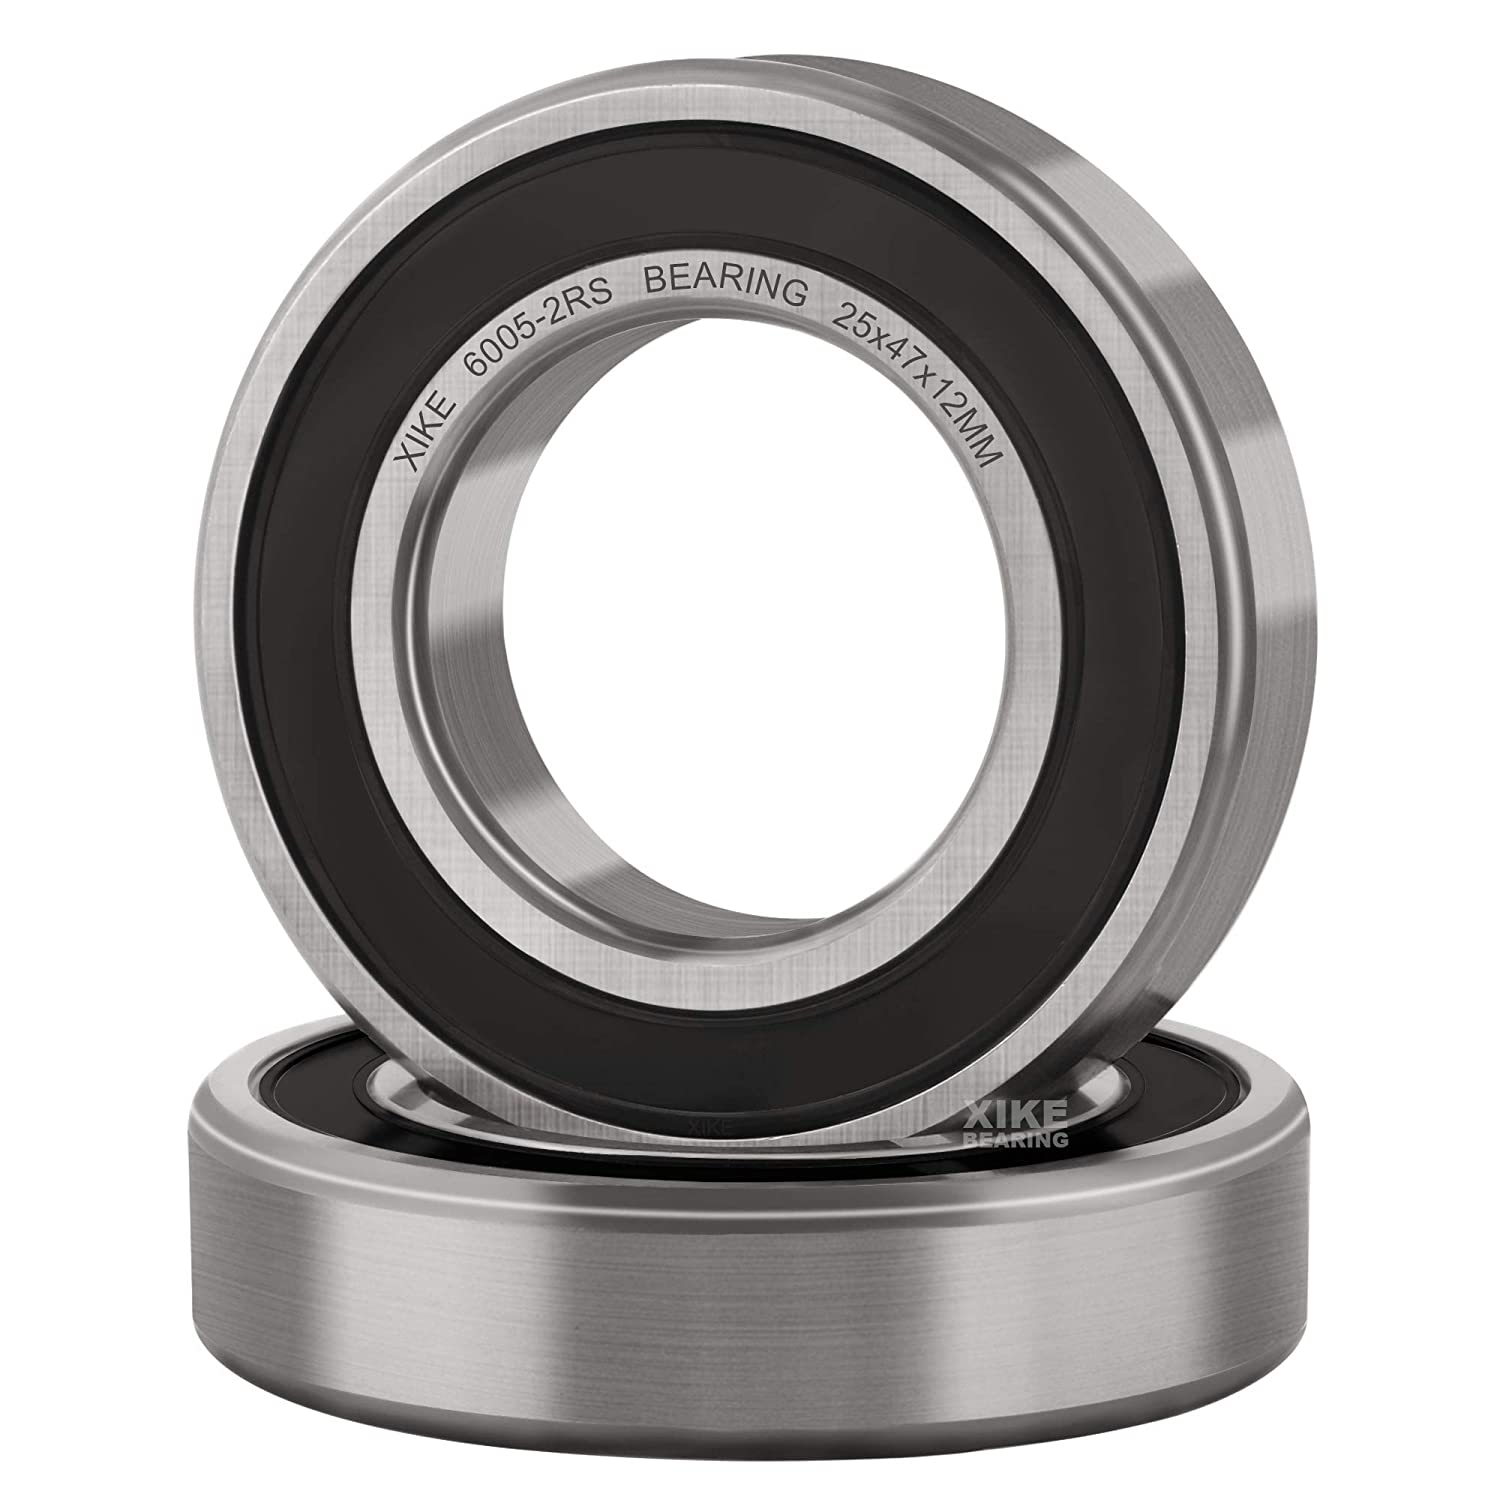 Xike 10 Pack 6005-2Rs Bearings 25X47X12Mm Stable Performance And Cost-Effective